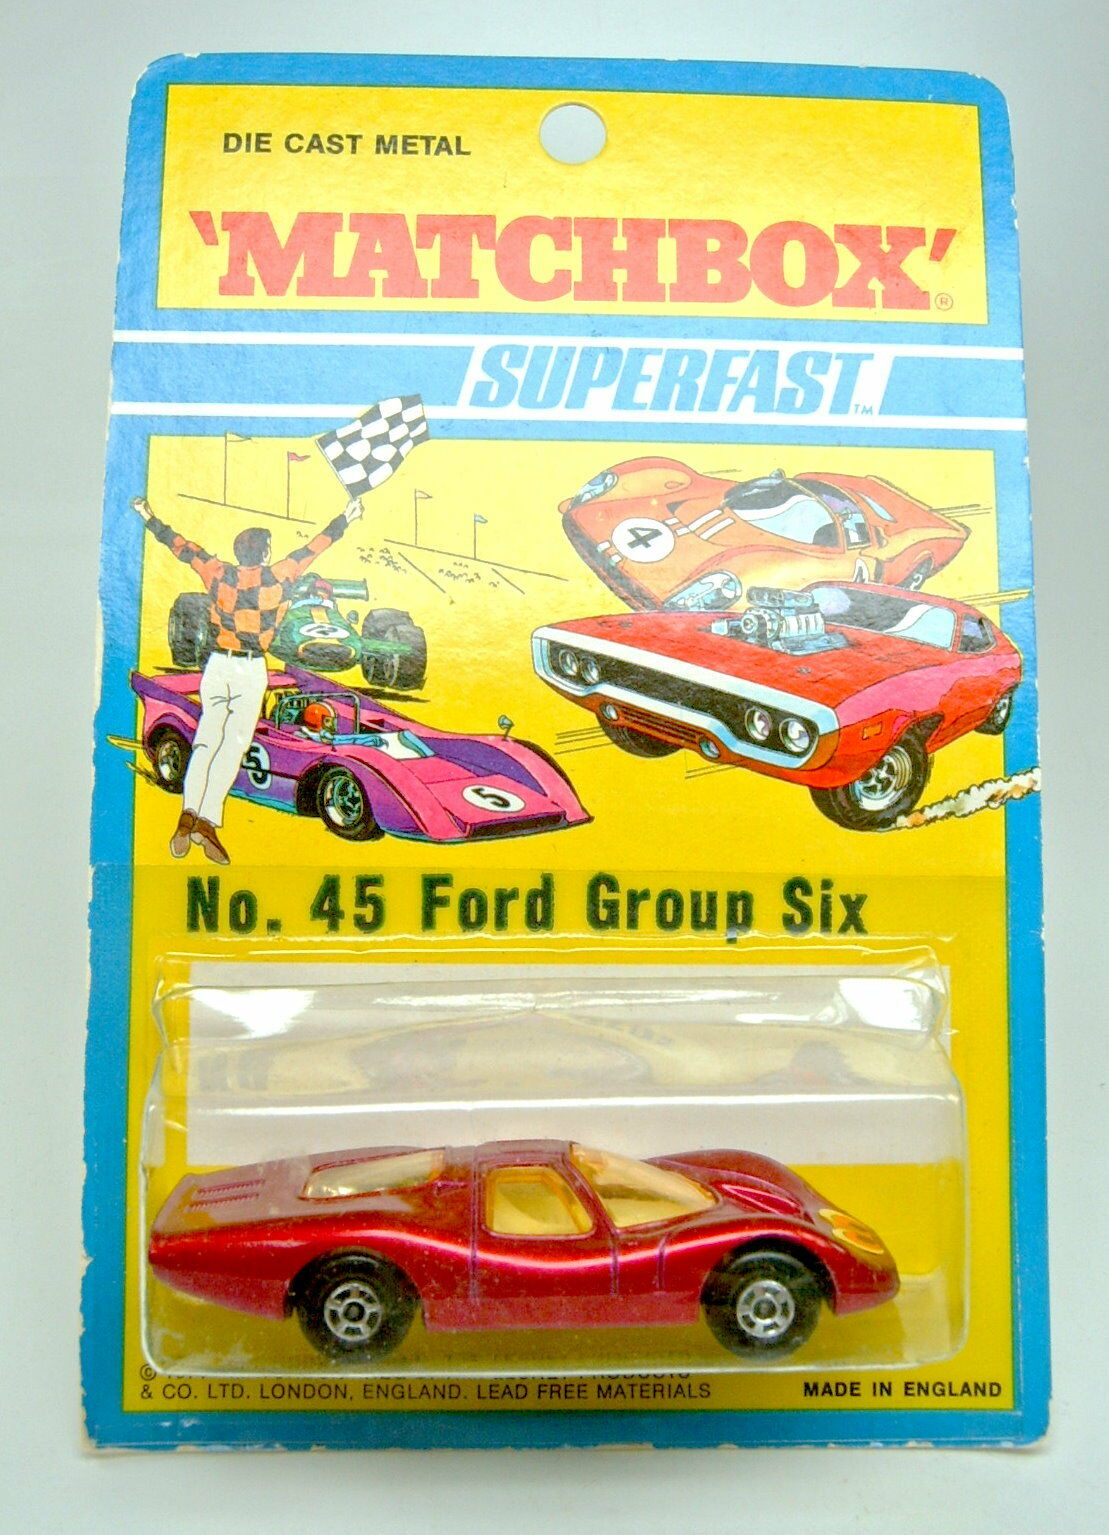 Matchbox Superfast No.45A Ford Group 6 met. red  Eyes  label mint